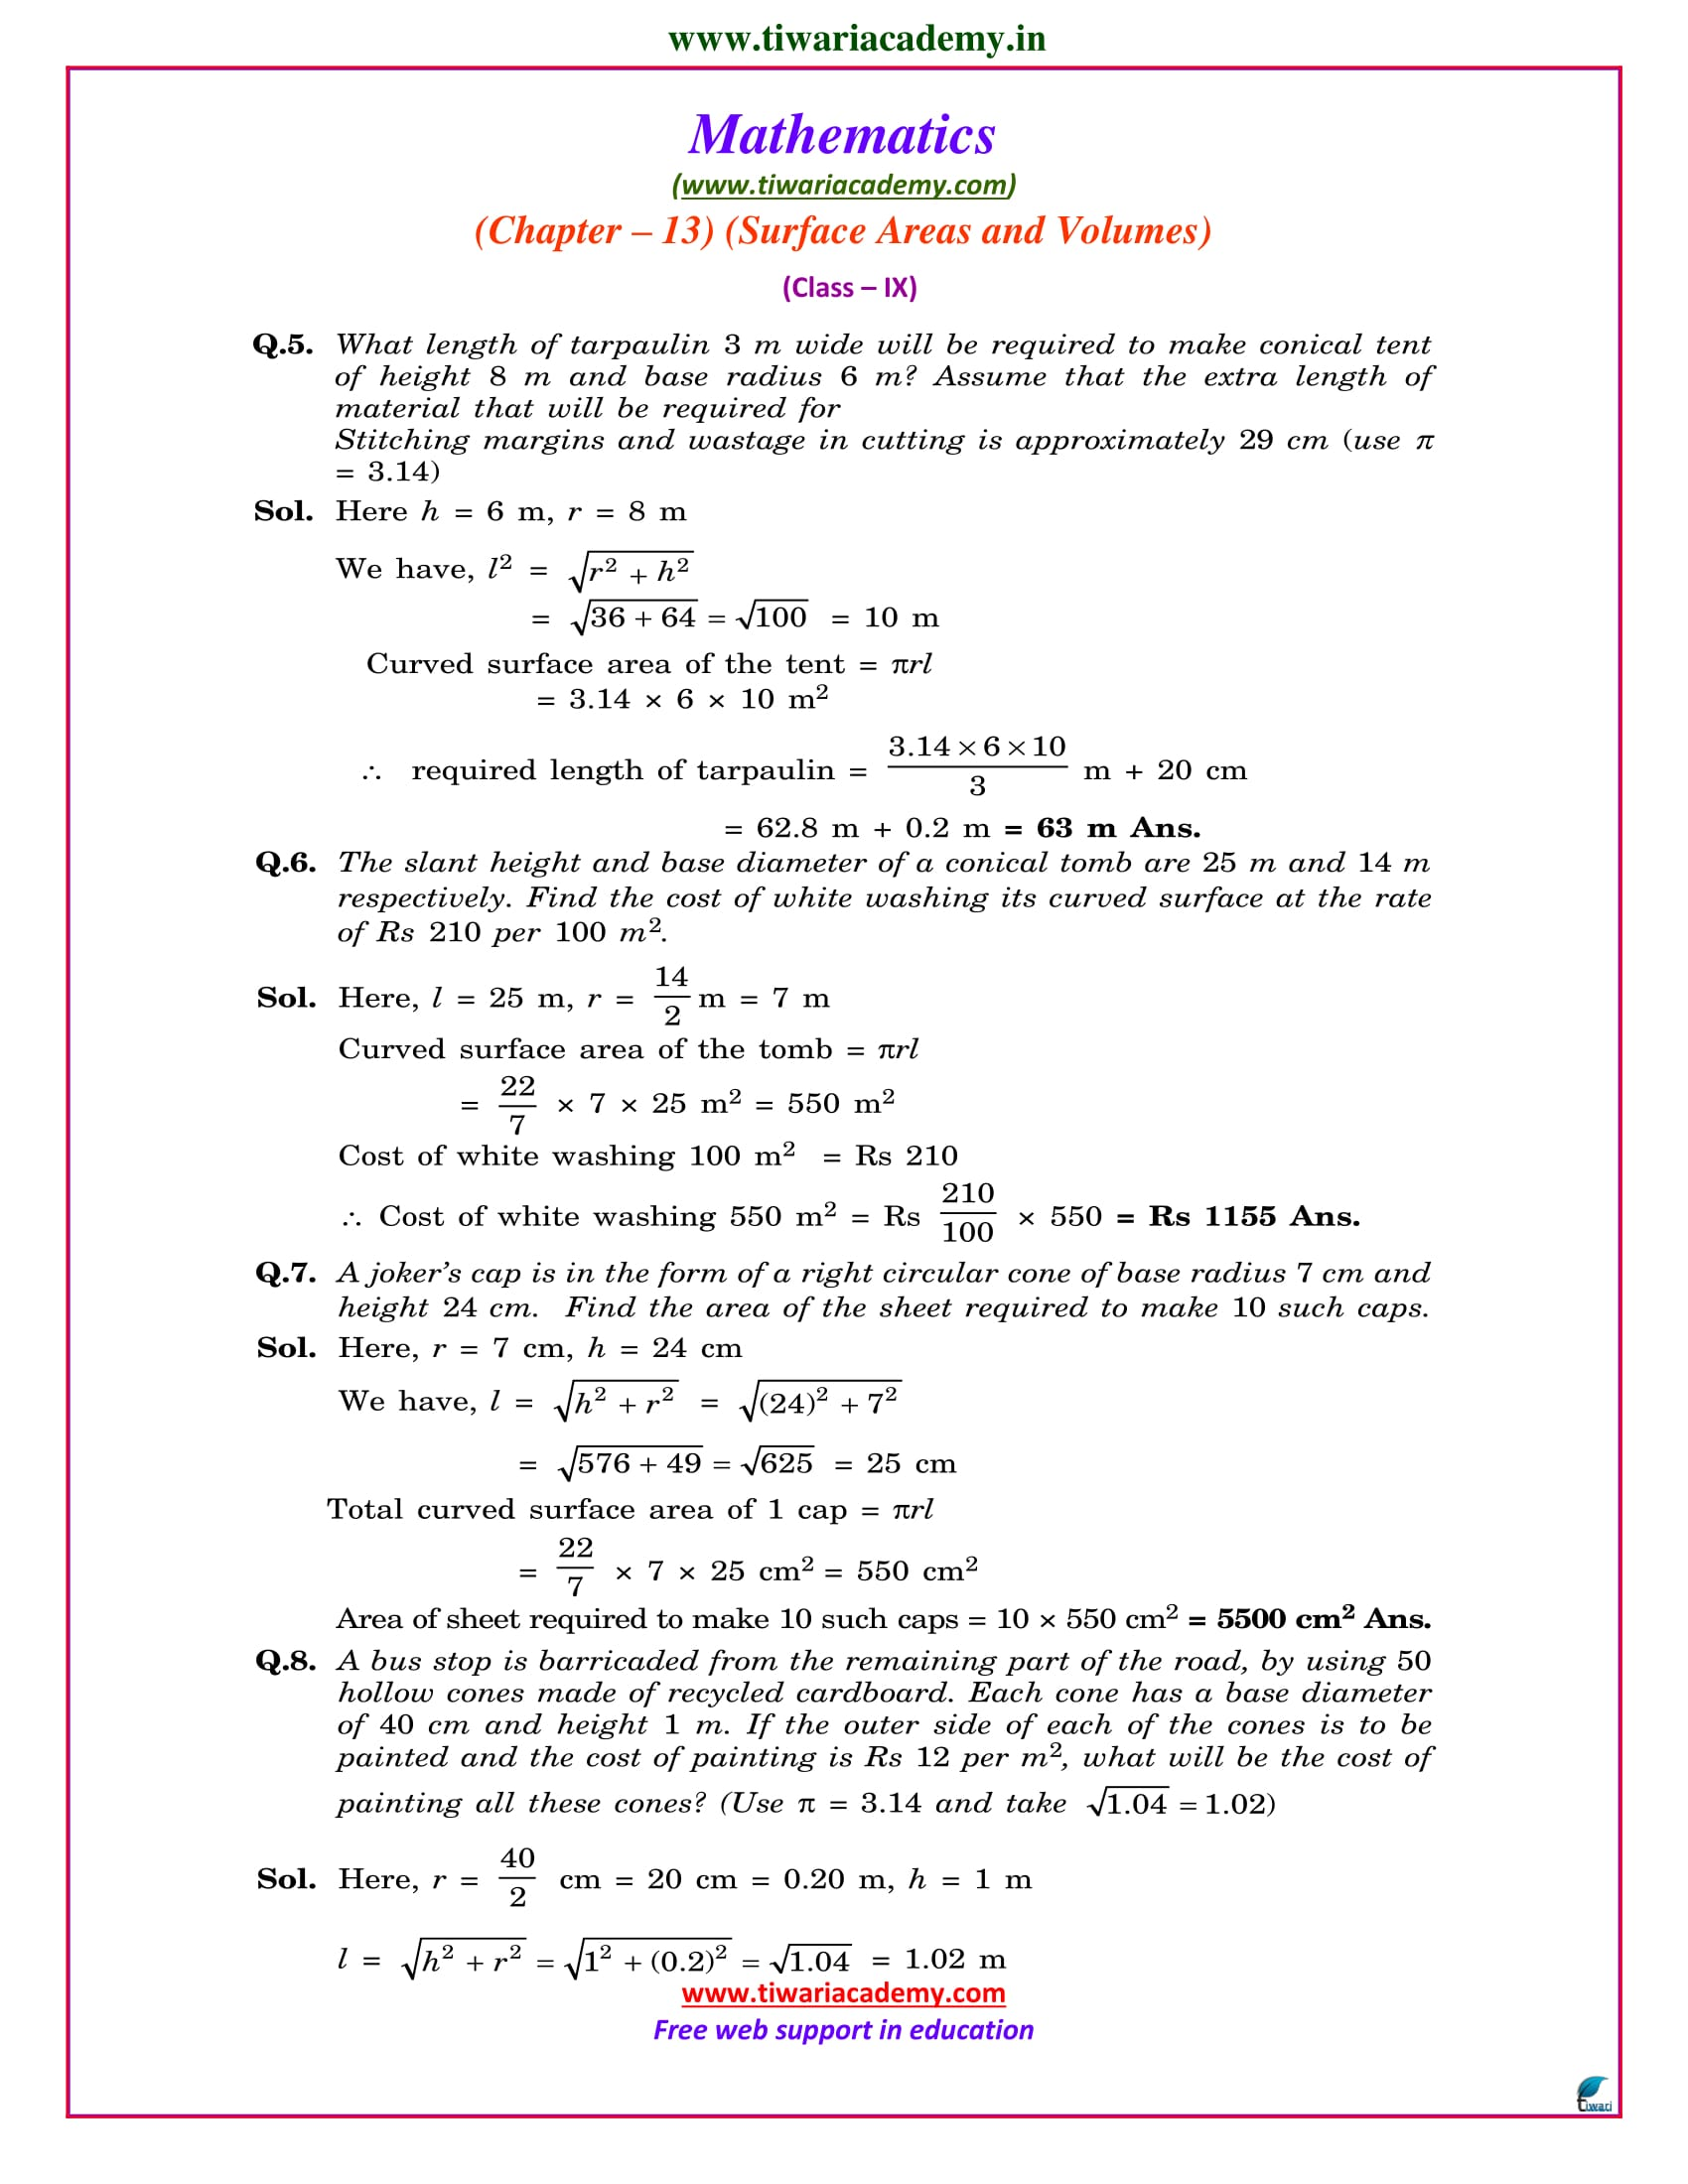 class 9 maths exercise 13.3 solutions